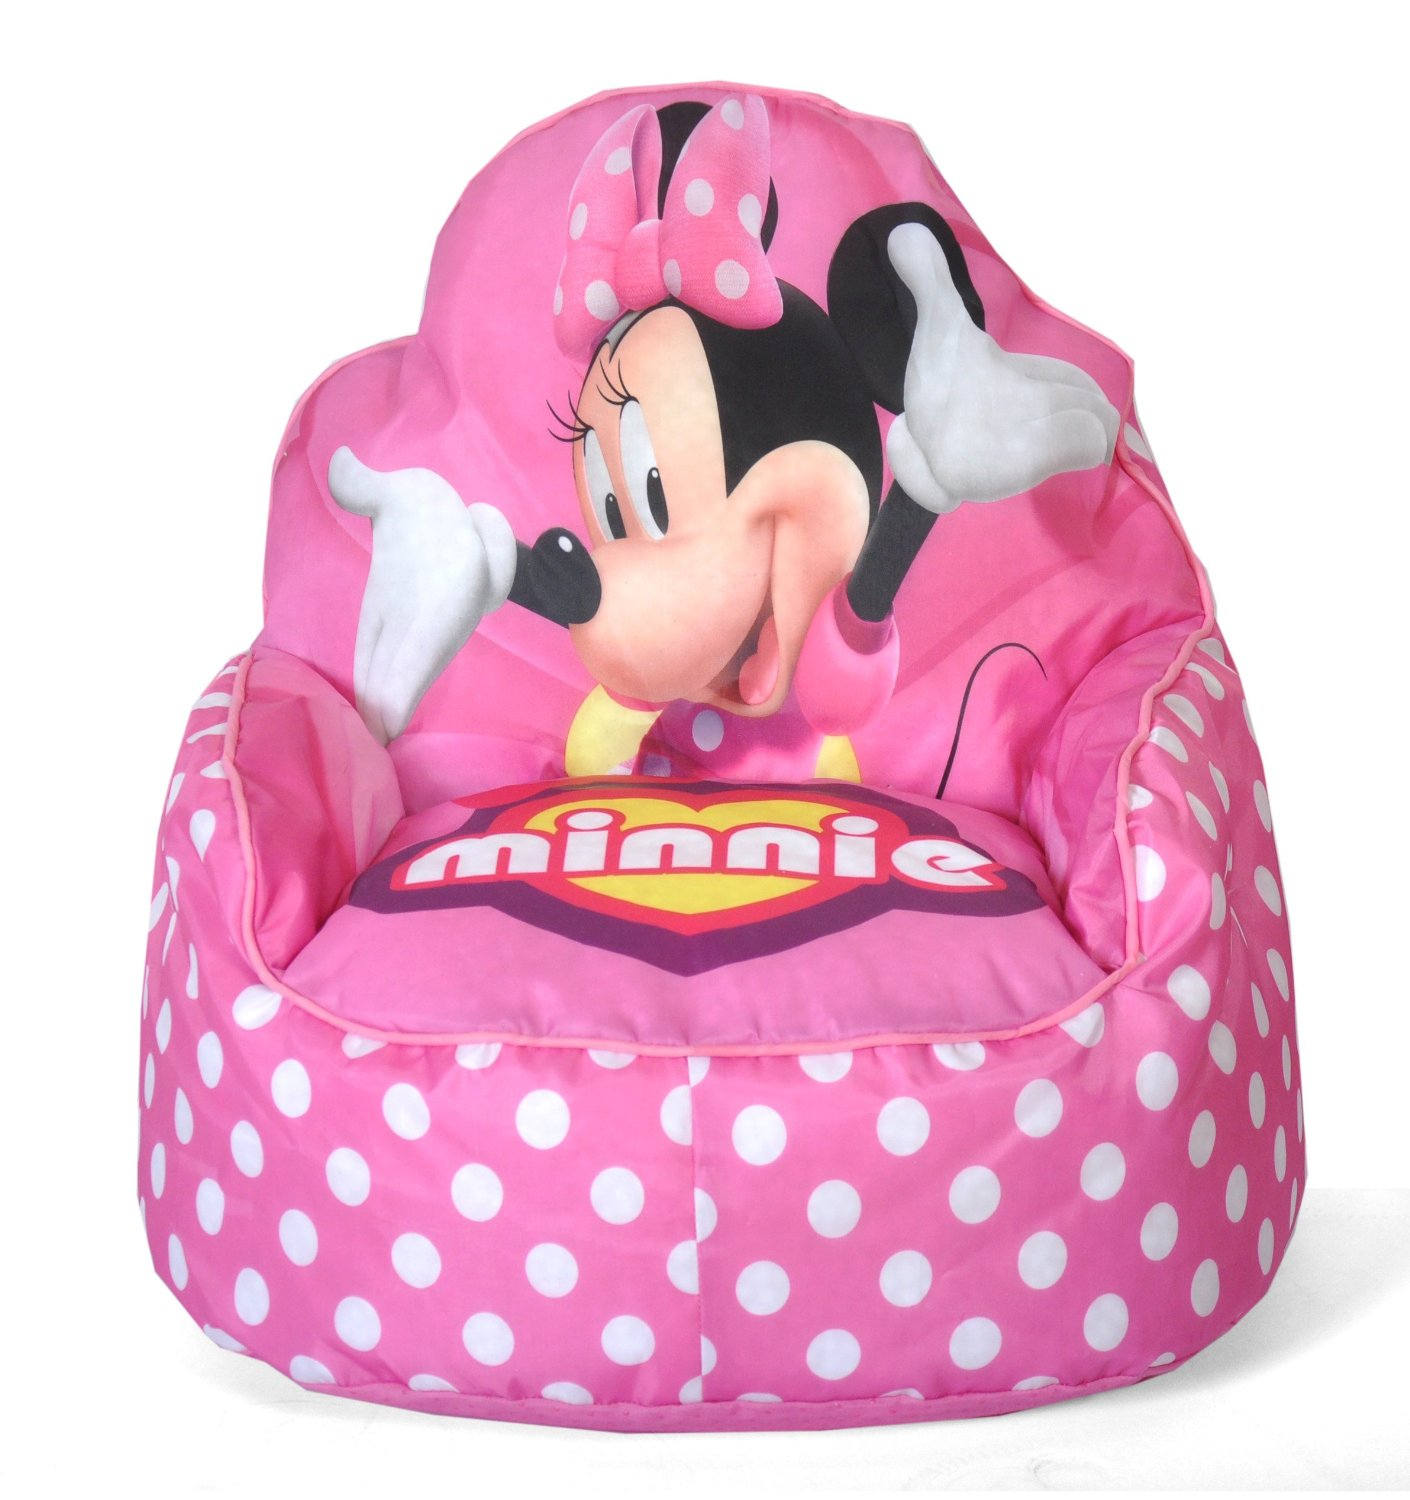 Top 10 Best Bean Bag Chairs for Kids Reviews  2018